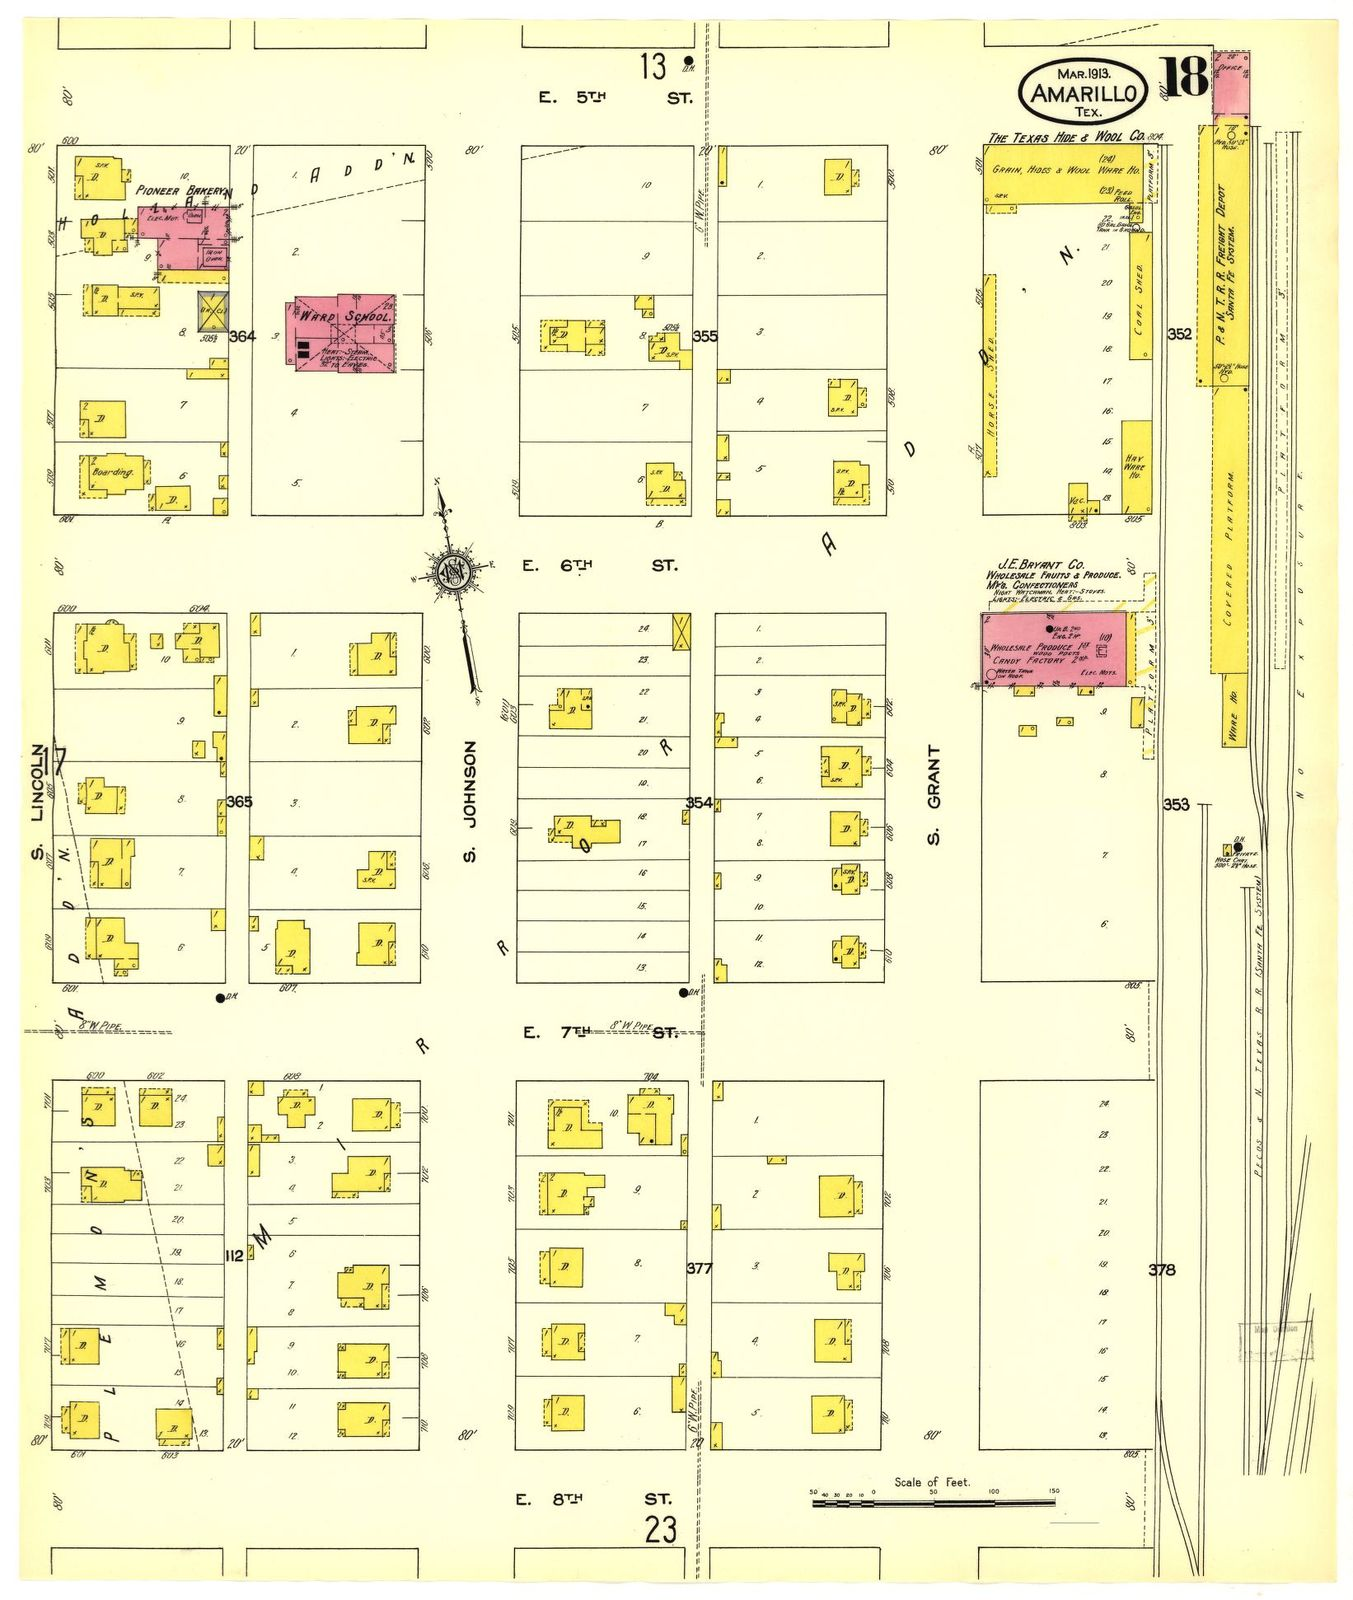 Map Of Texas Amarillo.Sanborn Fire Insurance Map From Amarillo Potter County Texas Picryl